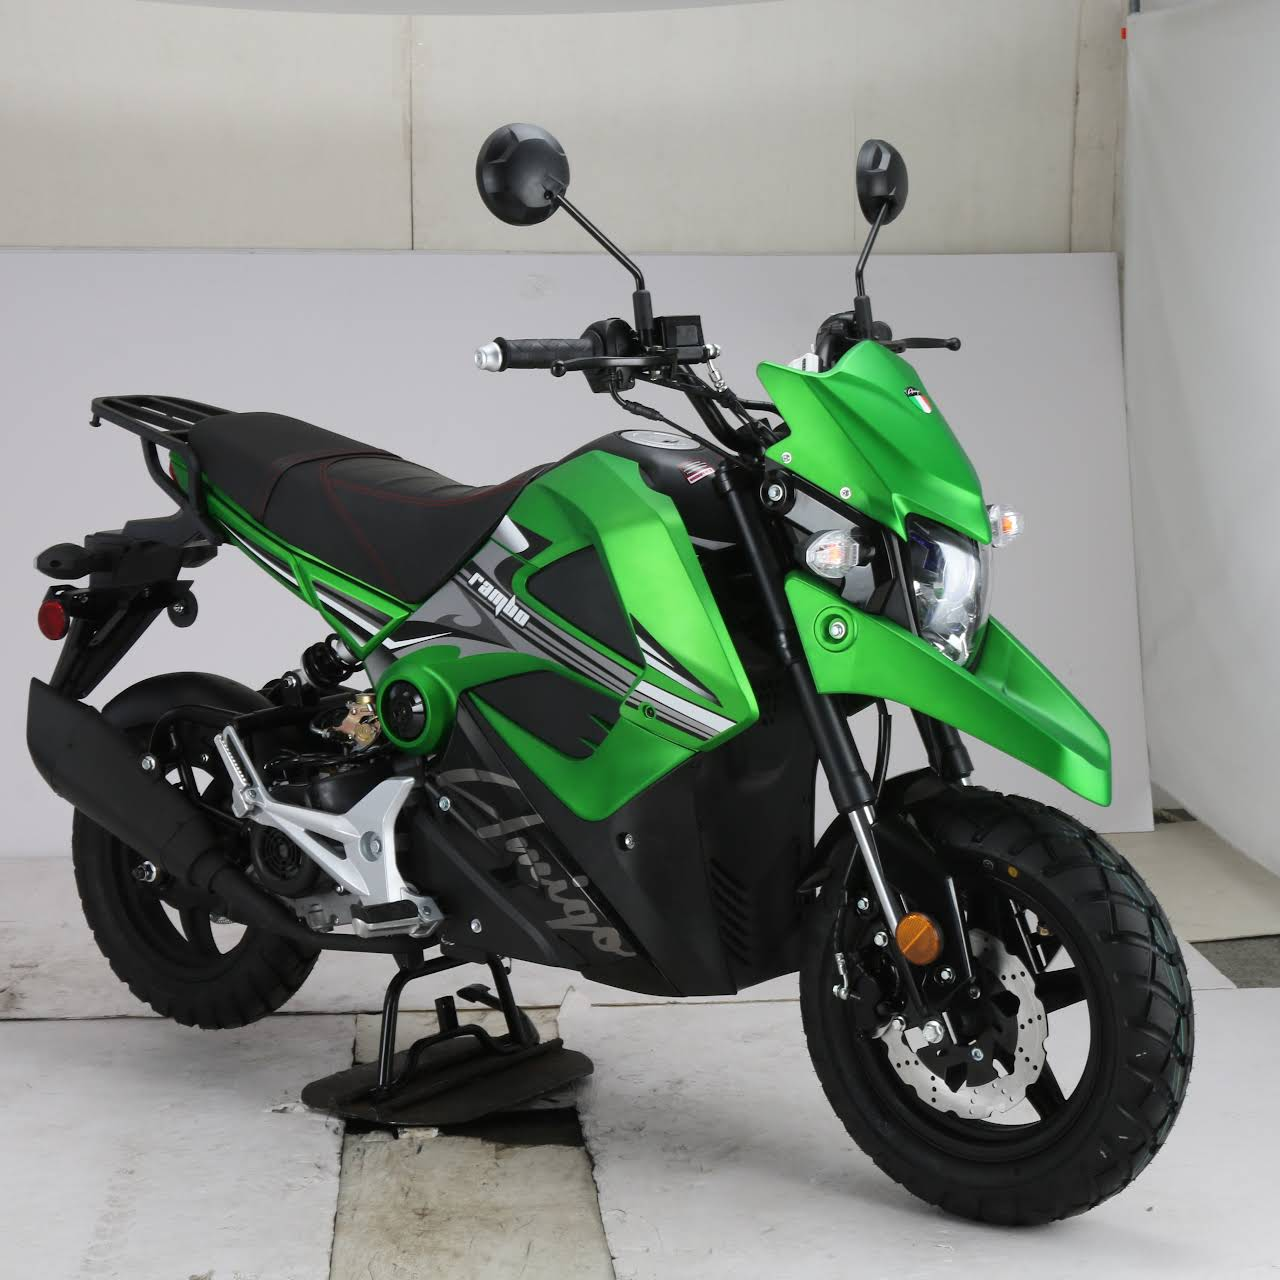 Scooter Importer LLC - Motorcycle Dealer in Los Angeles